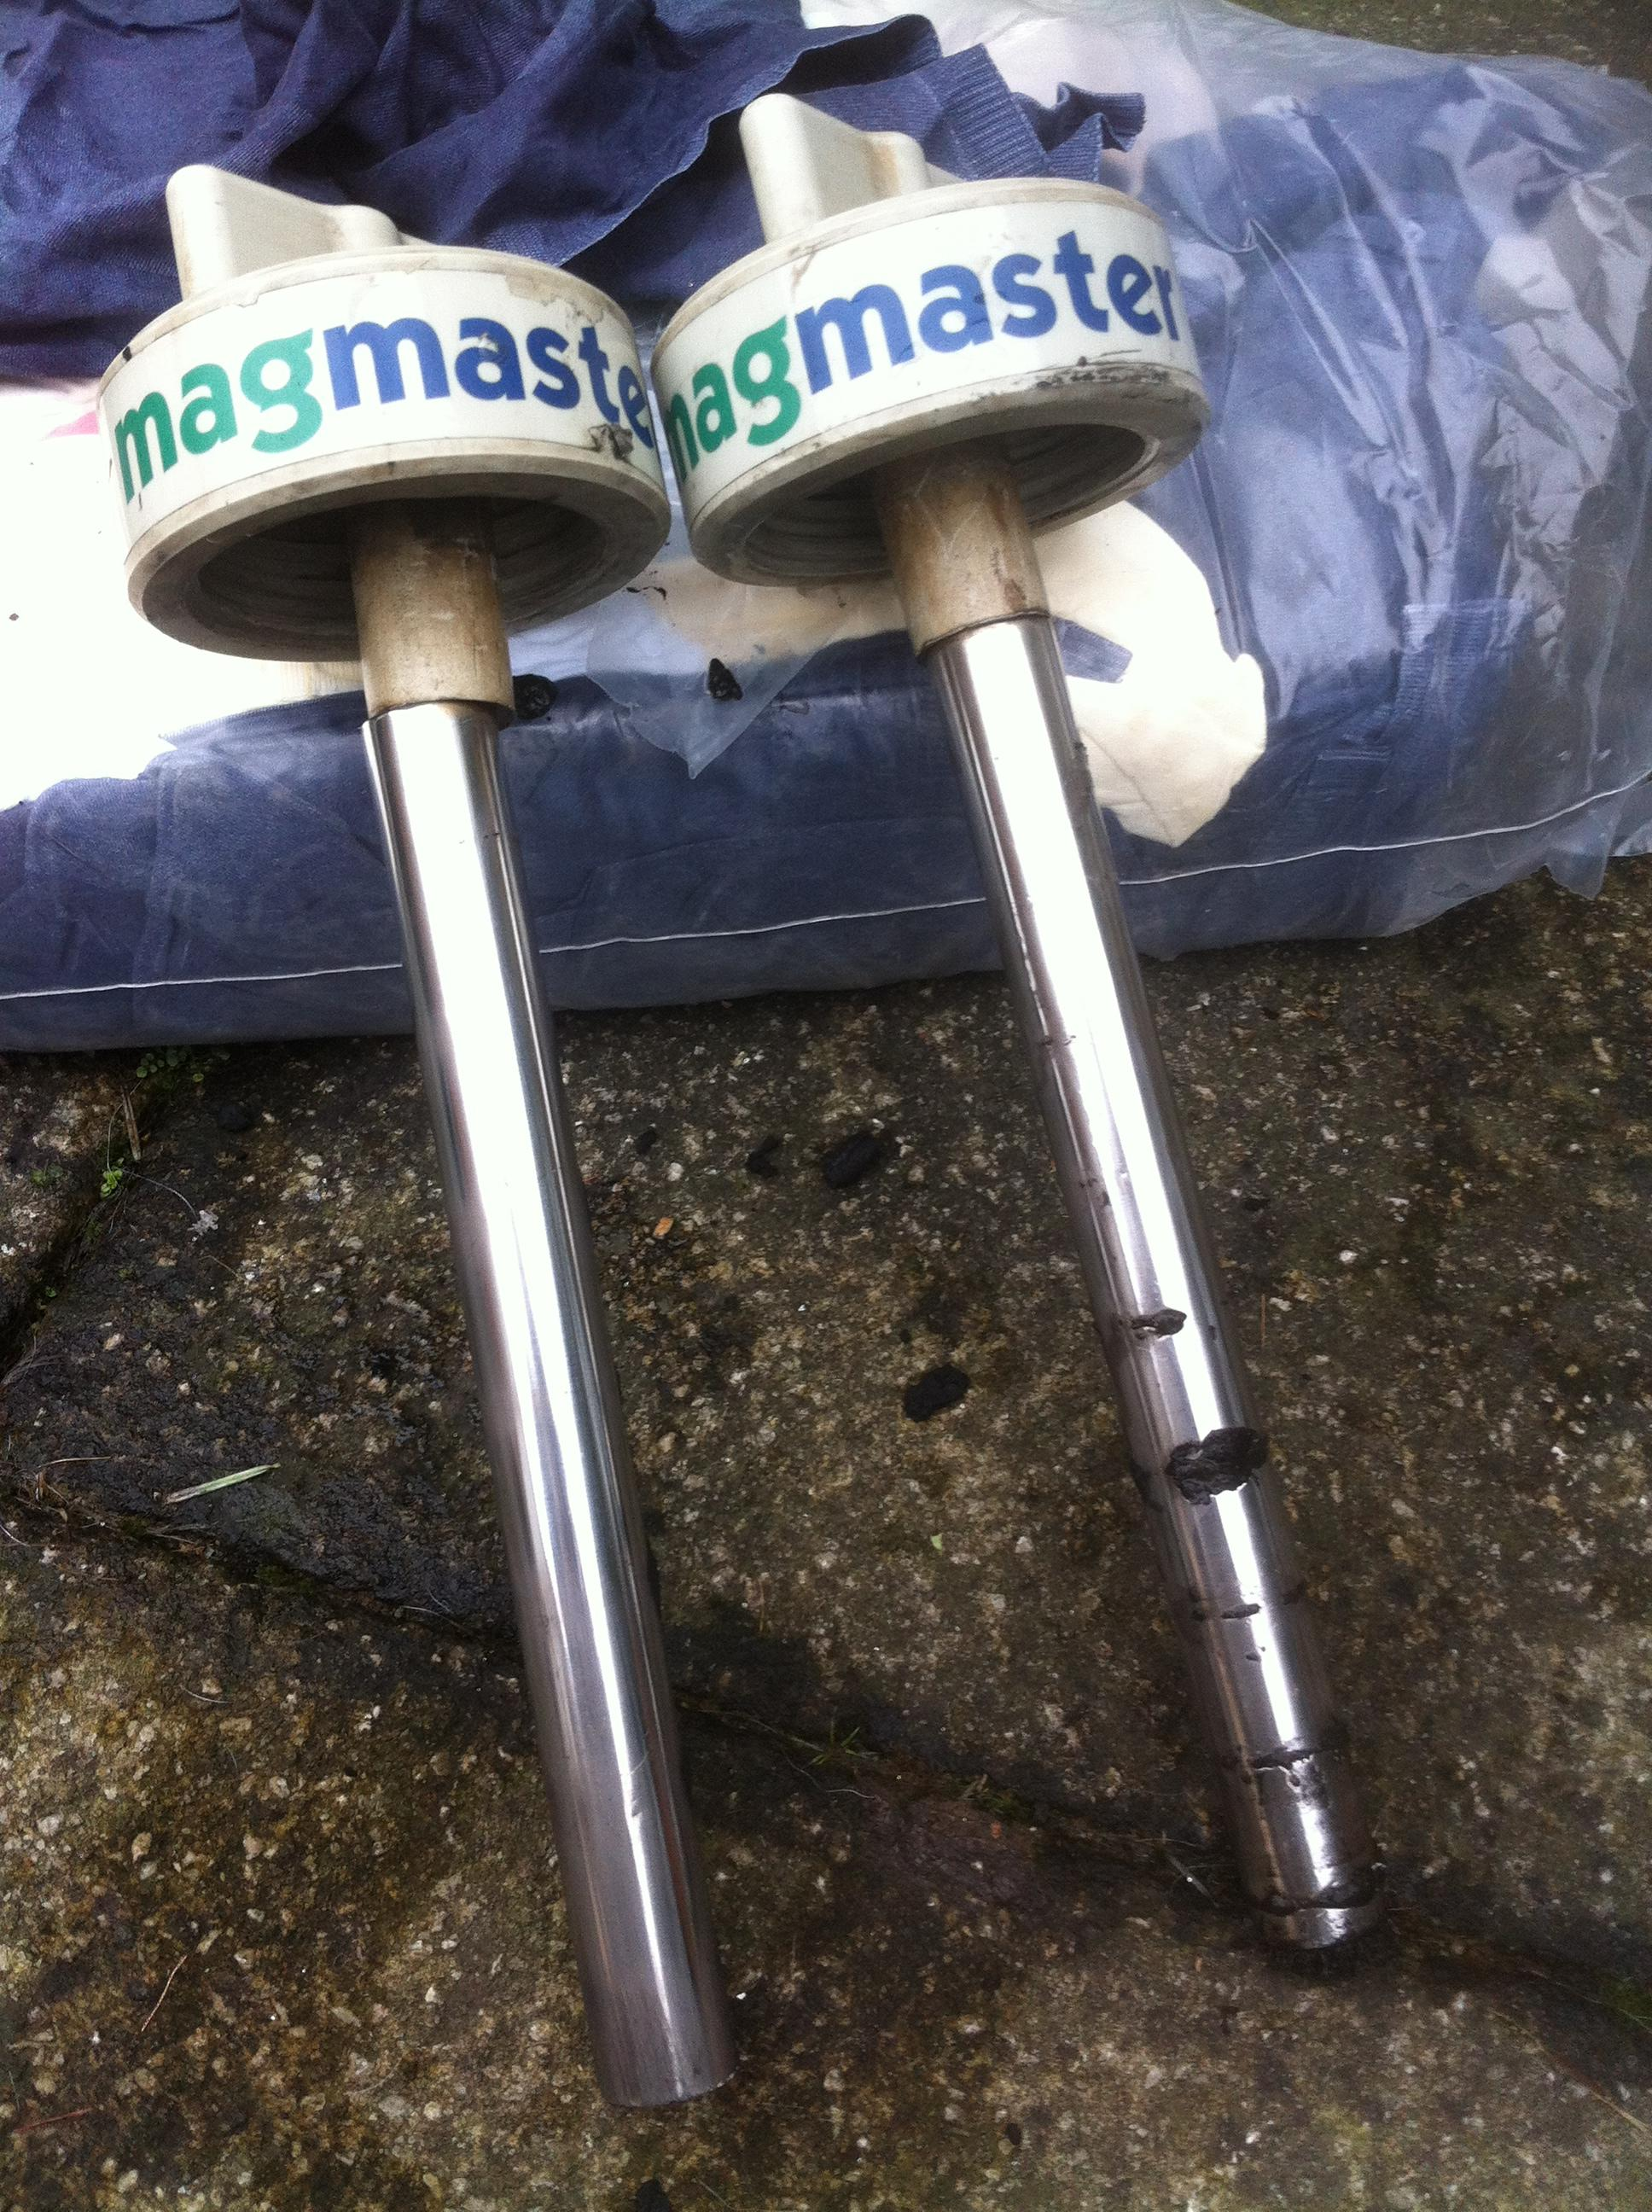 magmaster clean - after